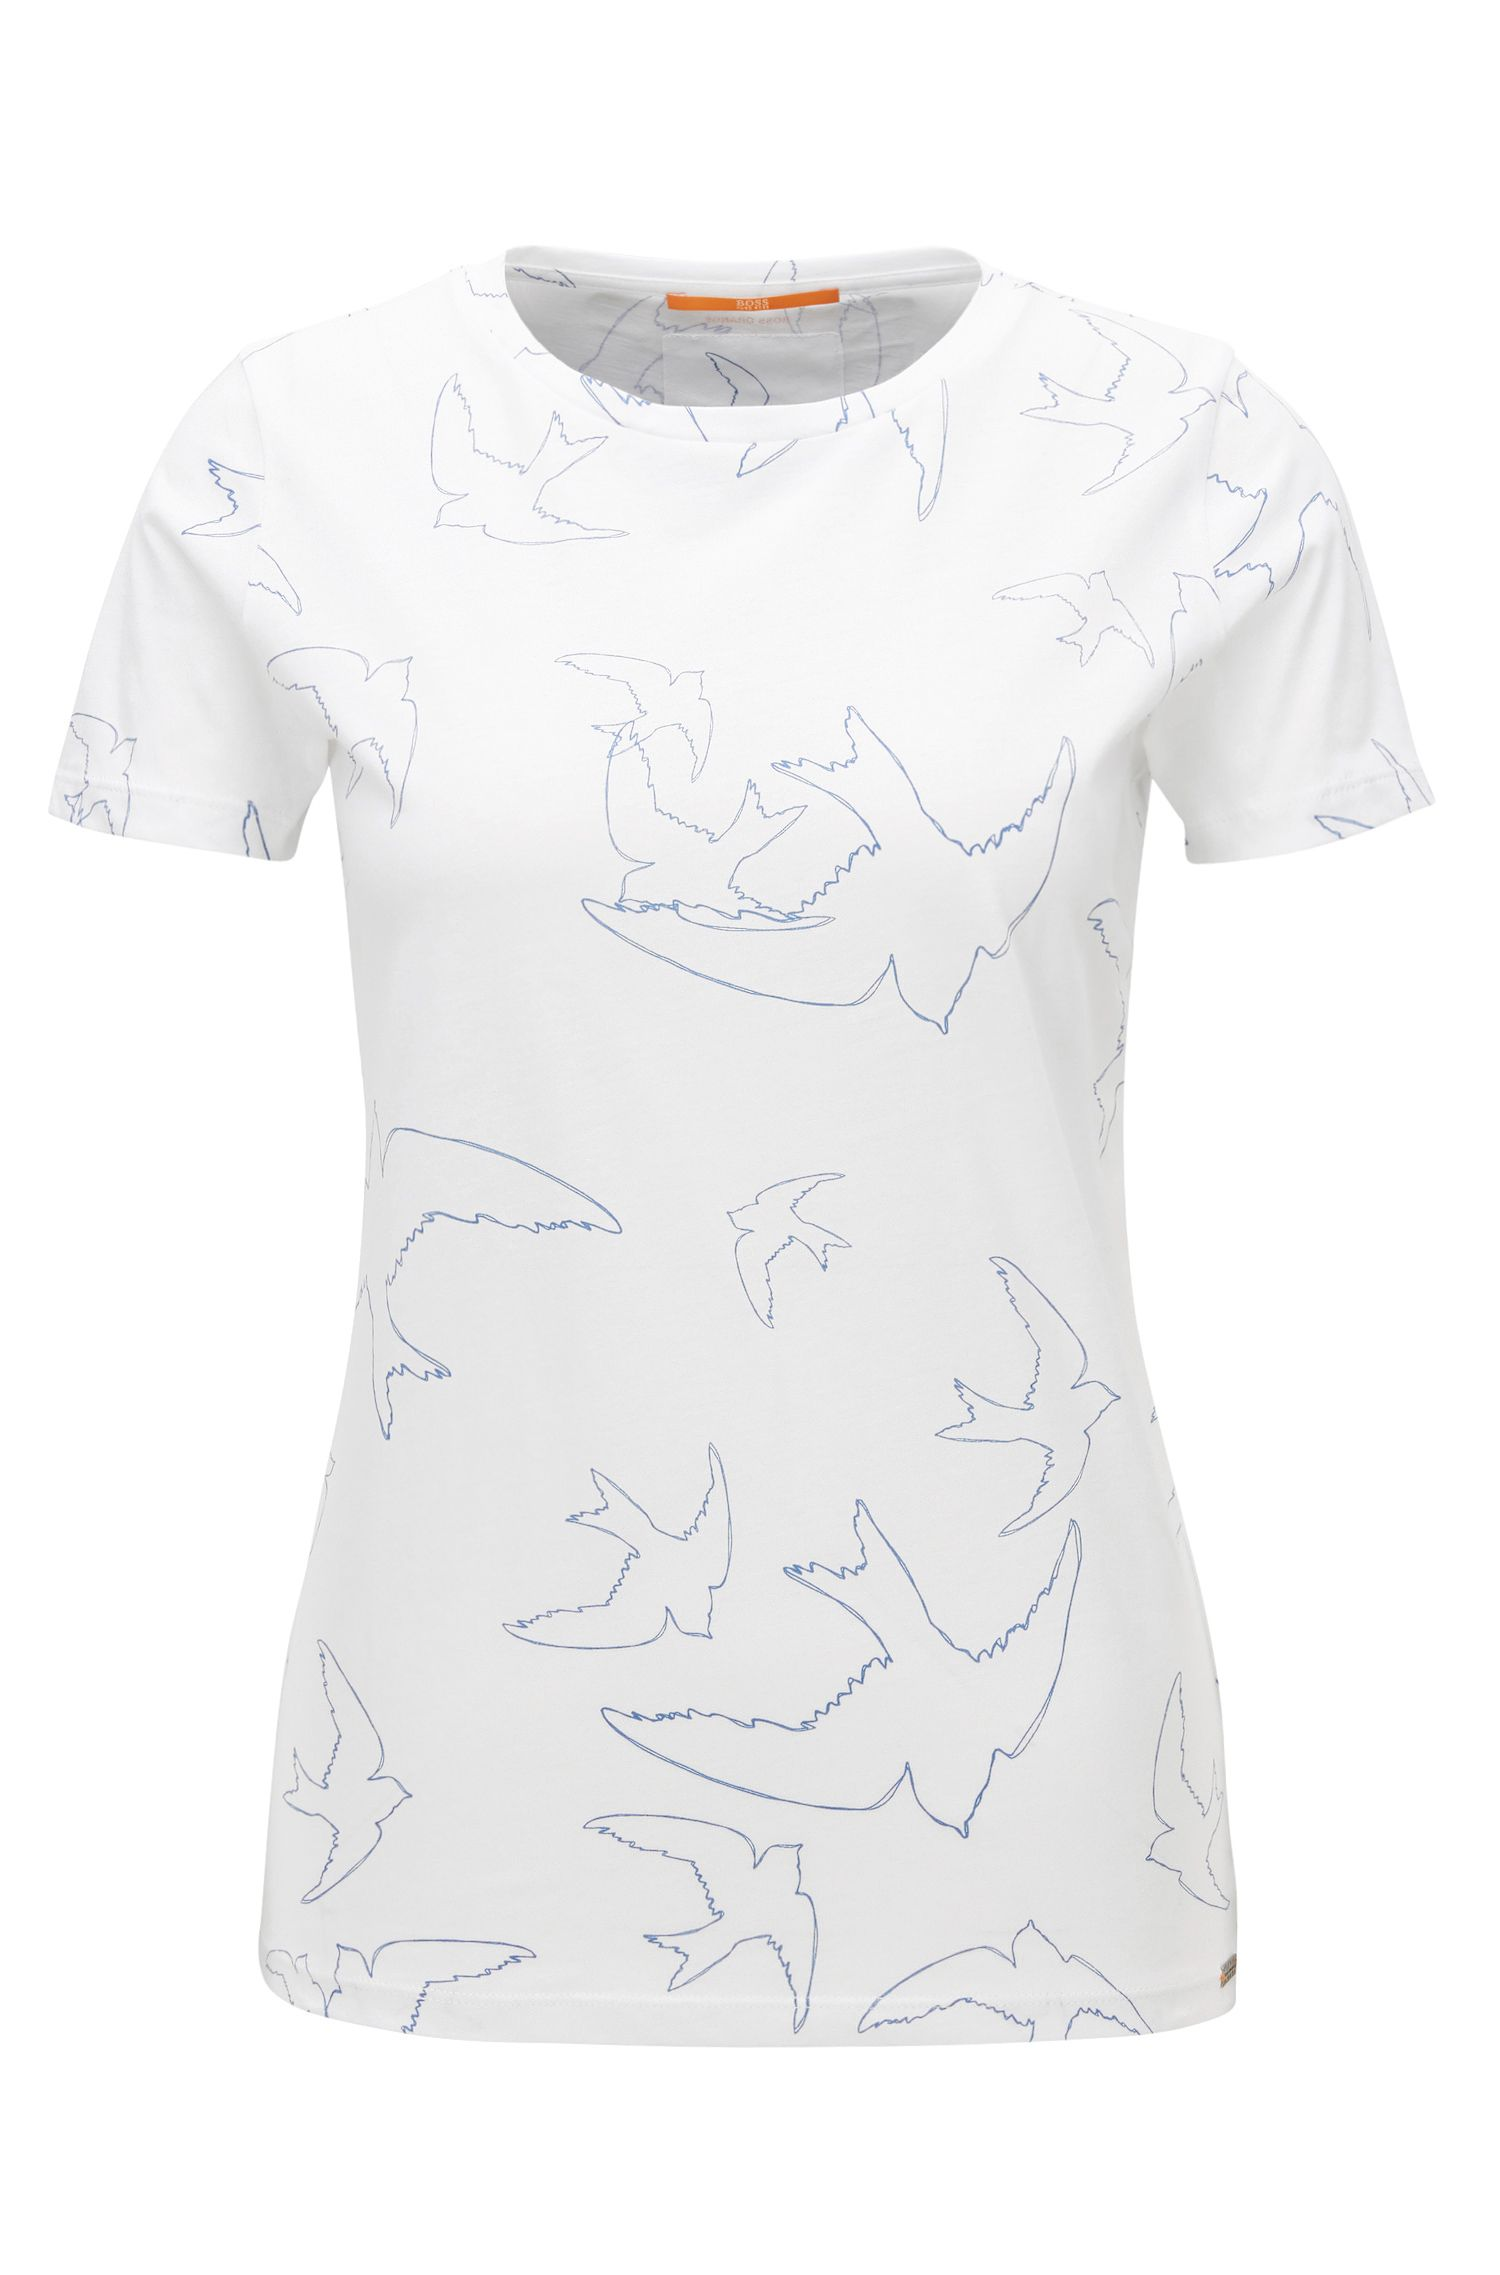 Slim-fit single jersey T-shirt in a bird motif